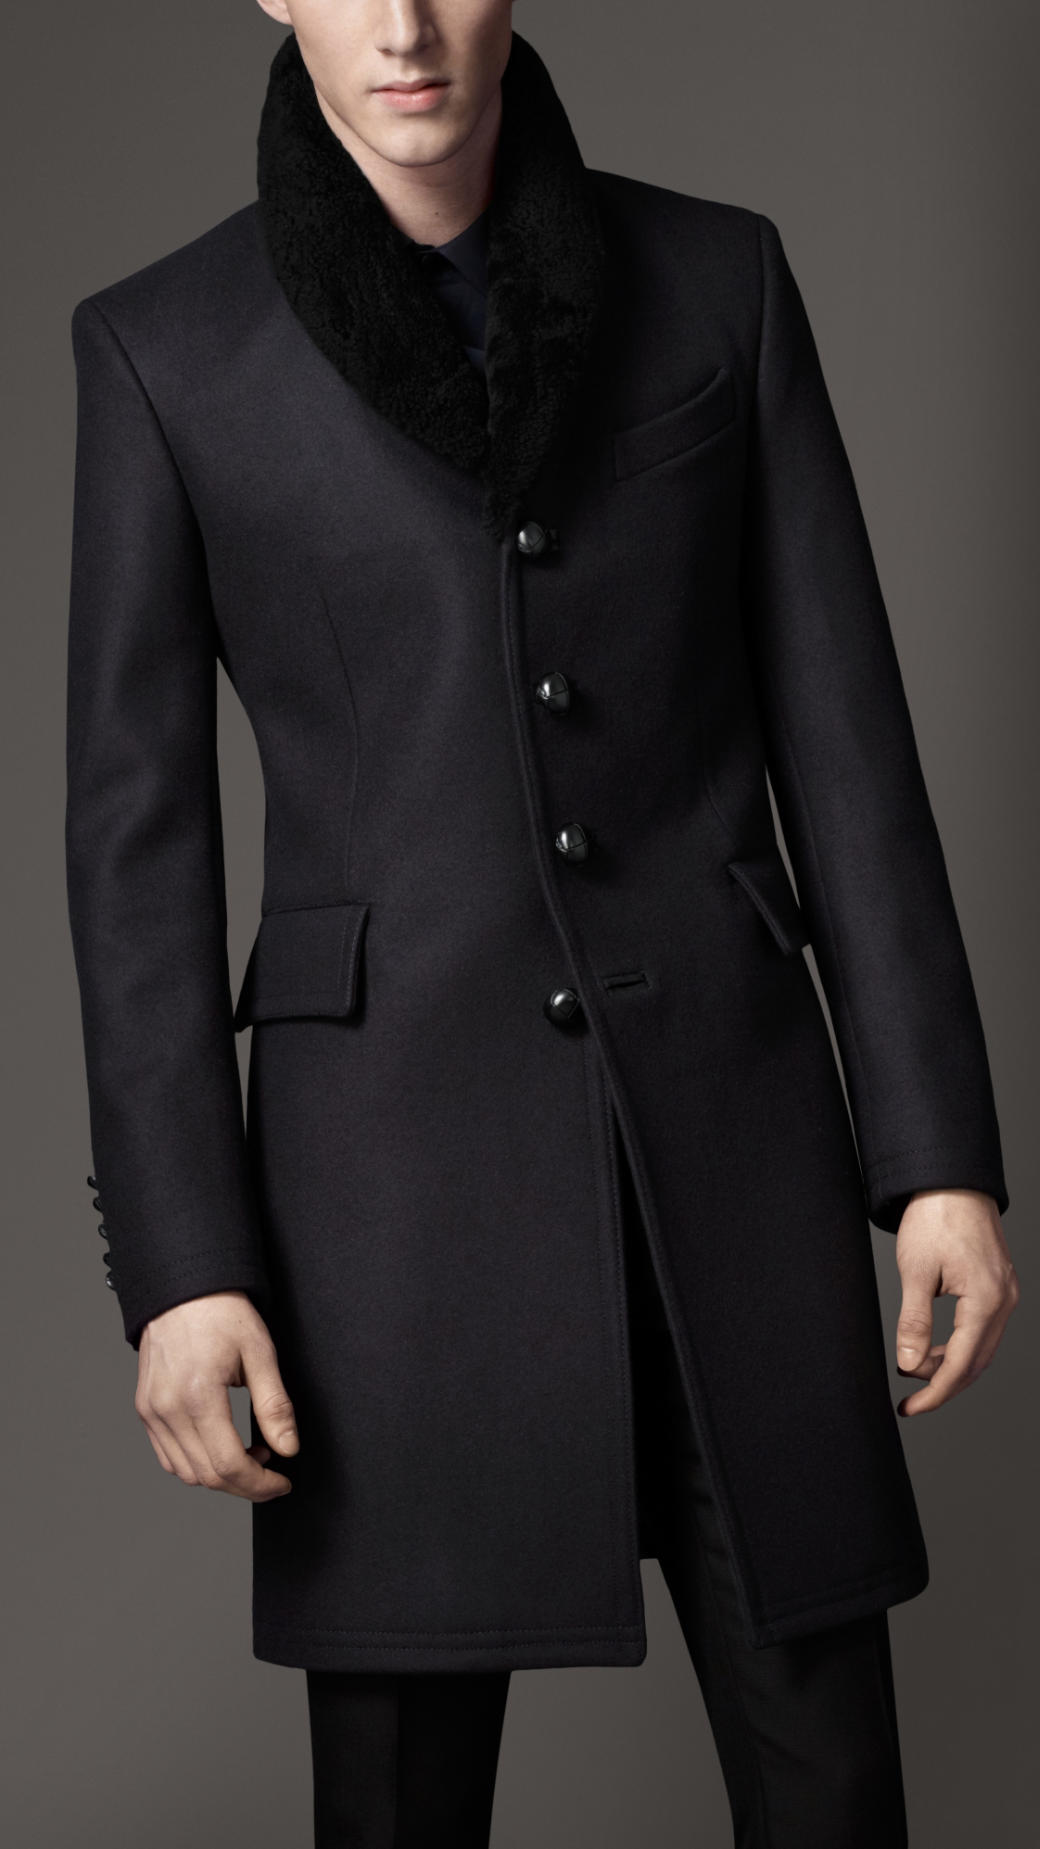 dc3ad2a6e5f Lyst - Burberry Shearling Collar Top Coat in Black for Men